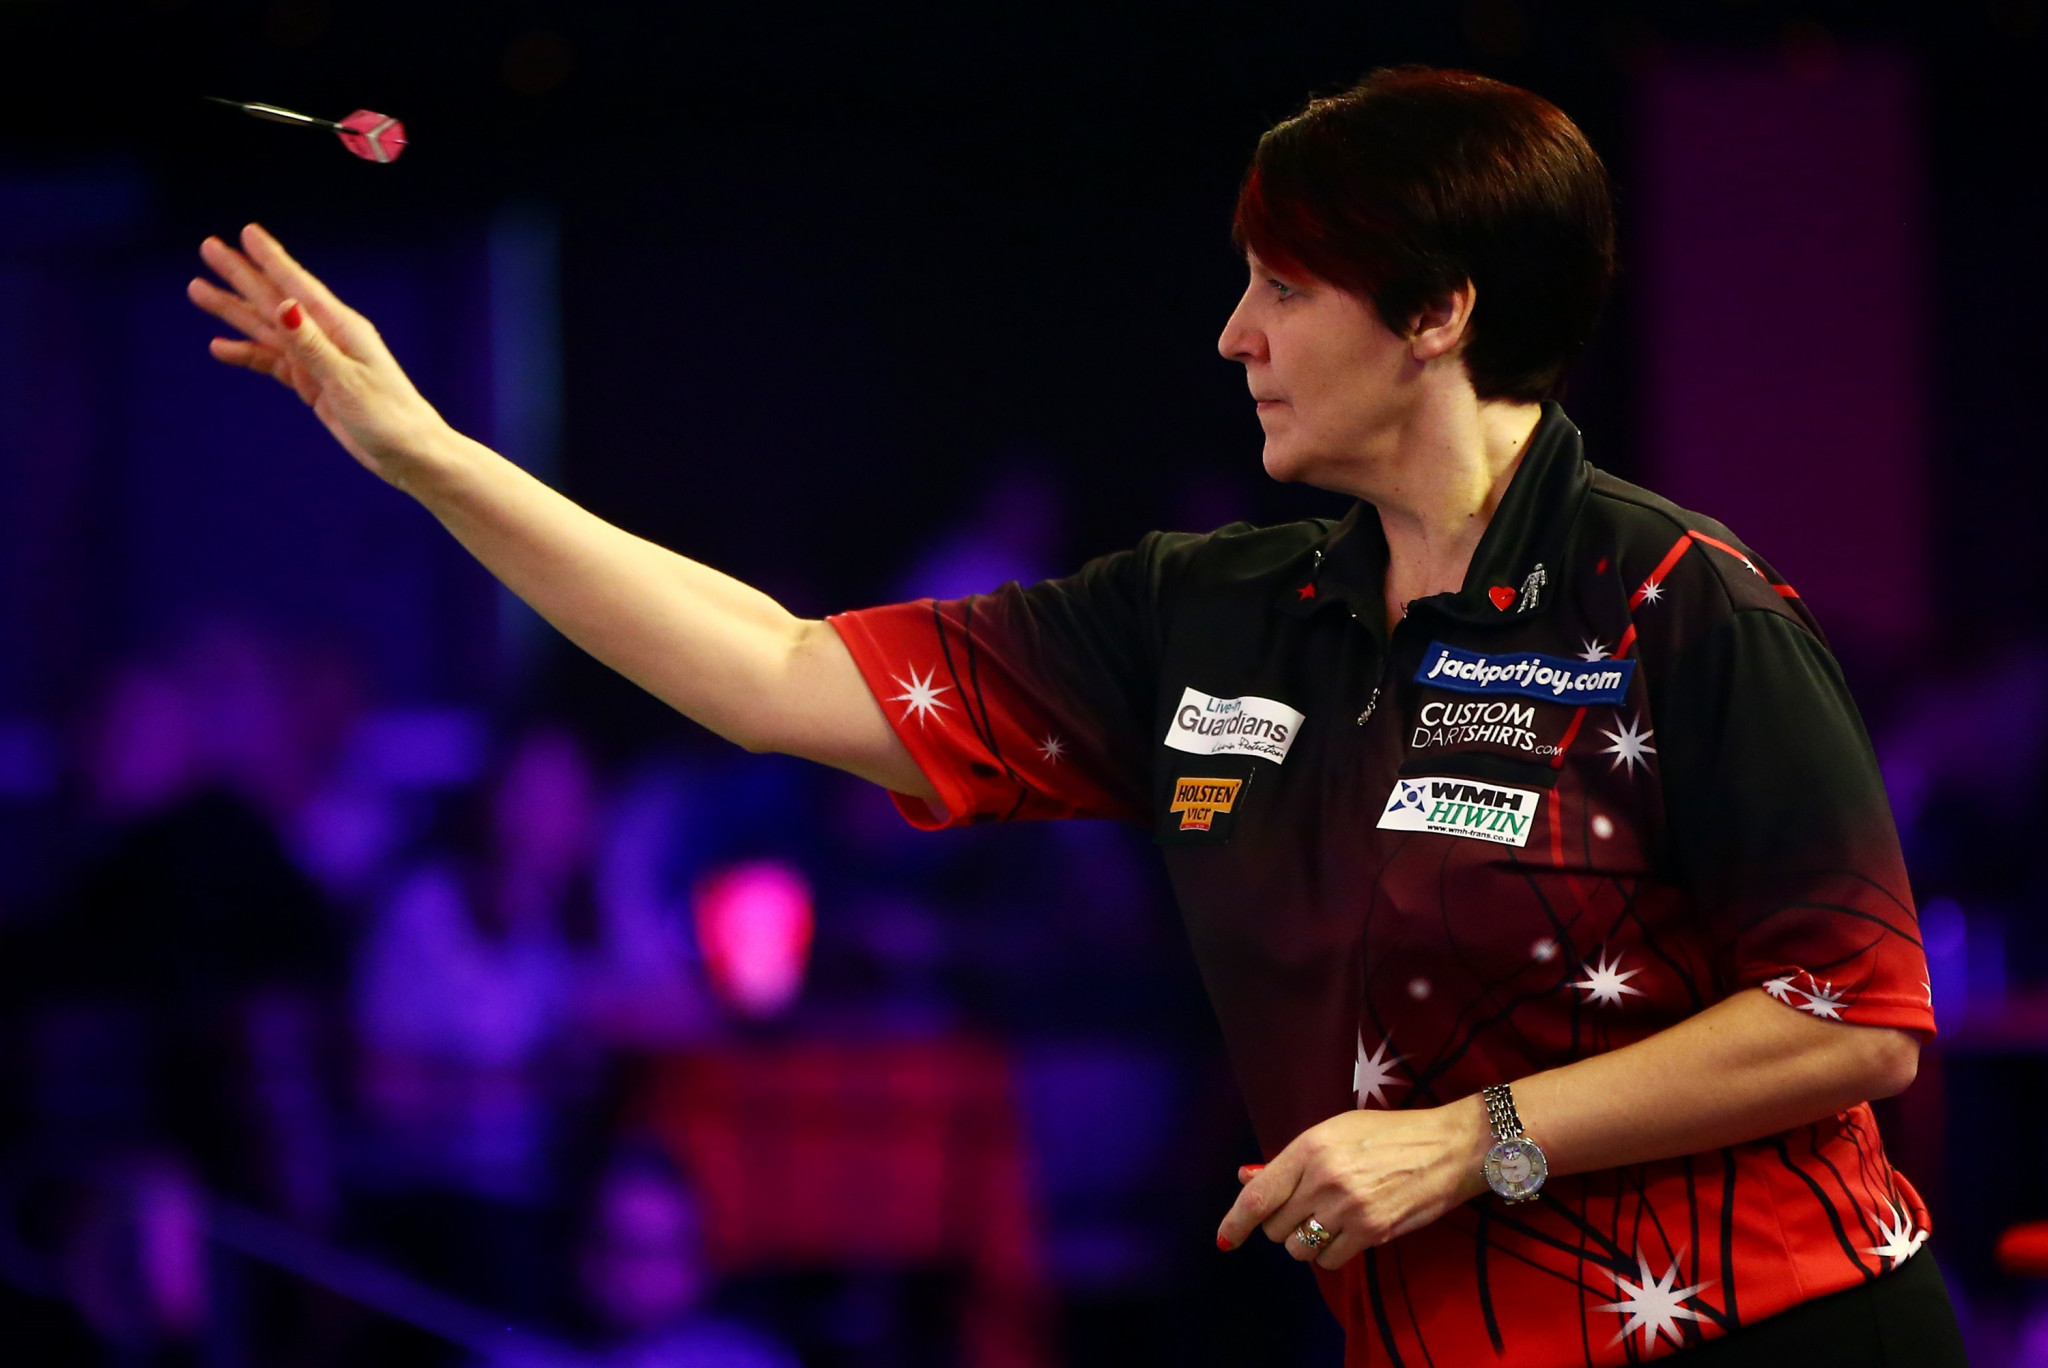 England's Lisa Ashton is the reigning champion in the women's event ©Getty Images